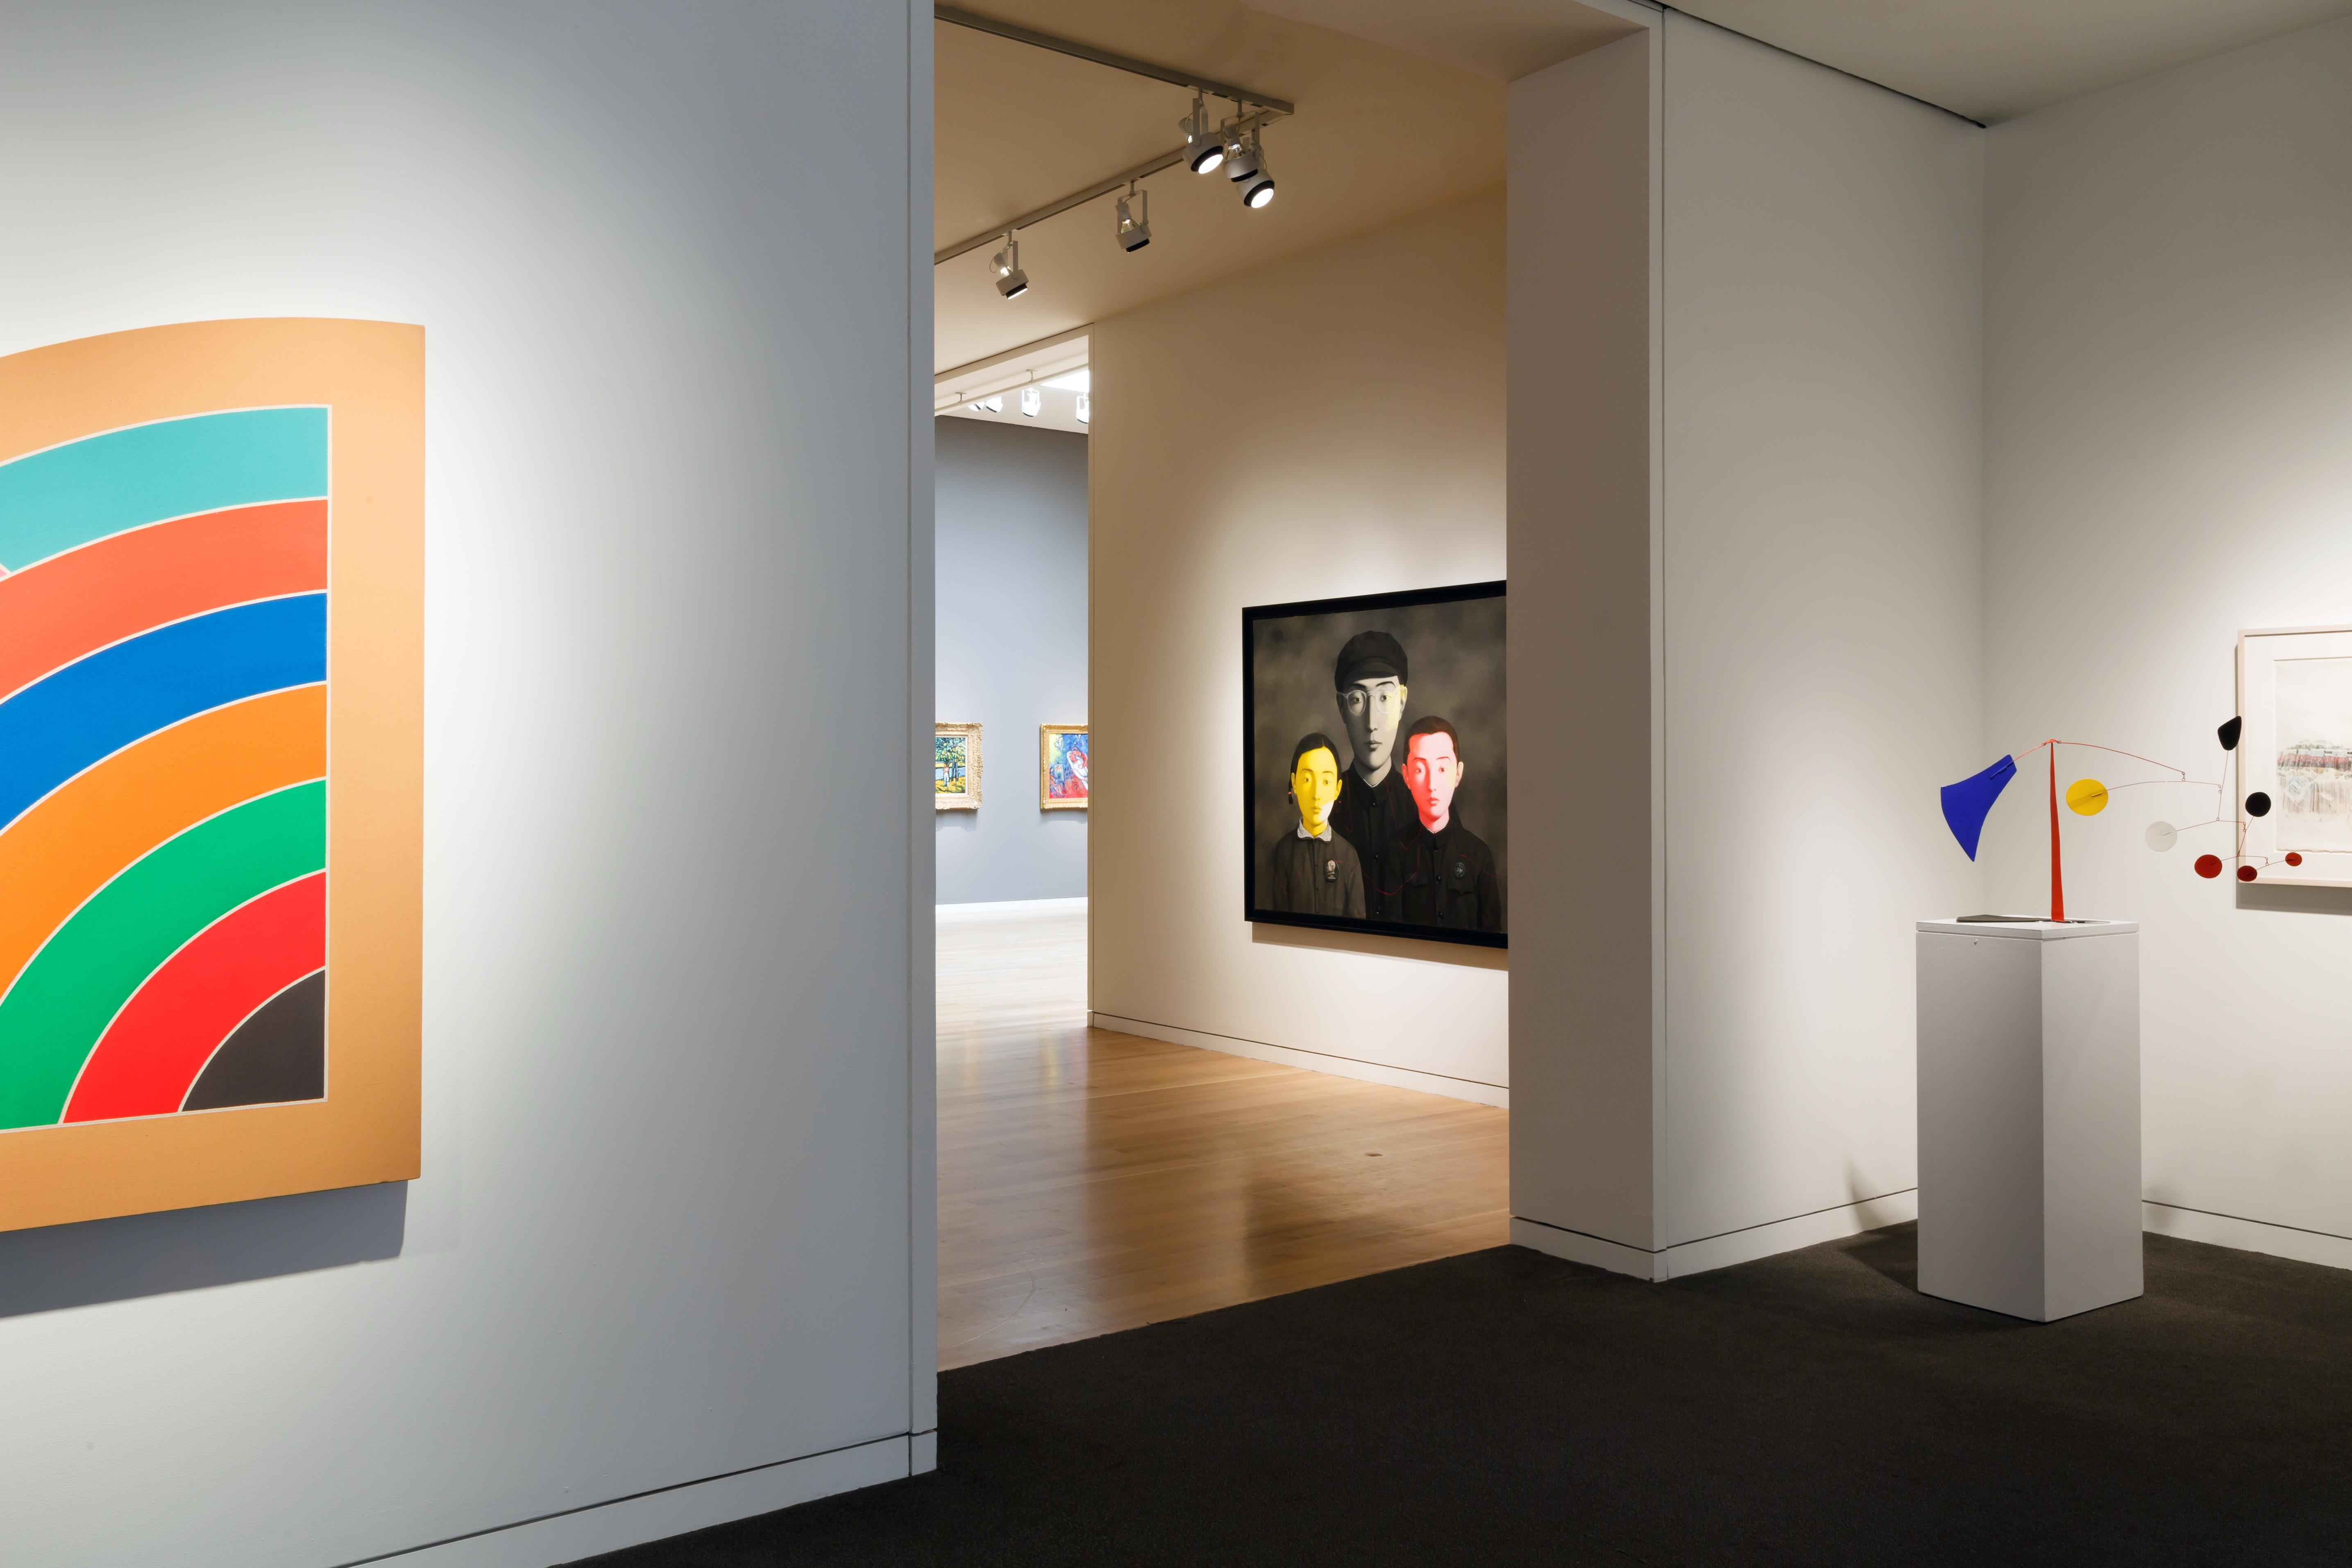 Colin Miller Art in Gallery - Sotheby's Auction House